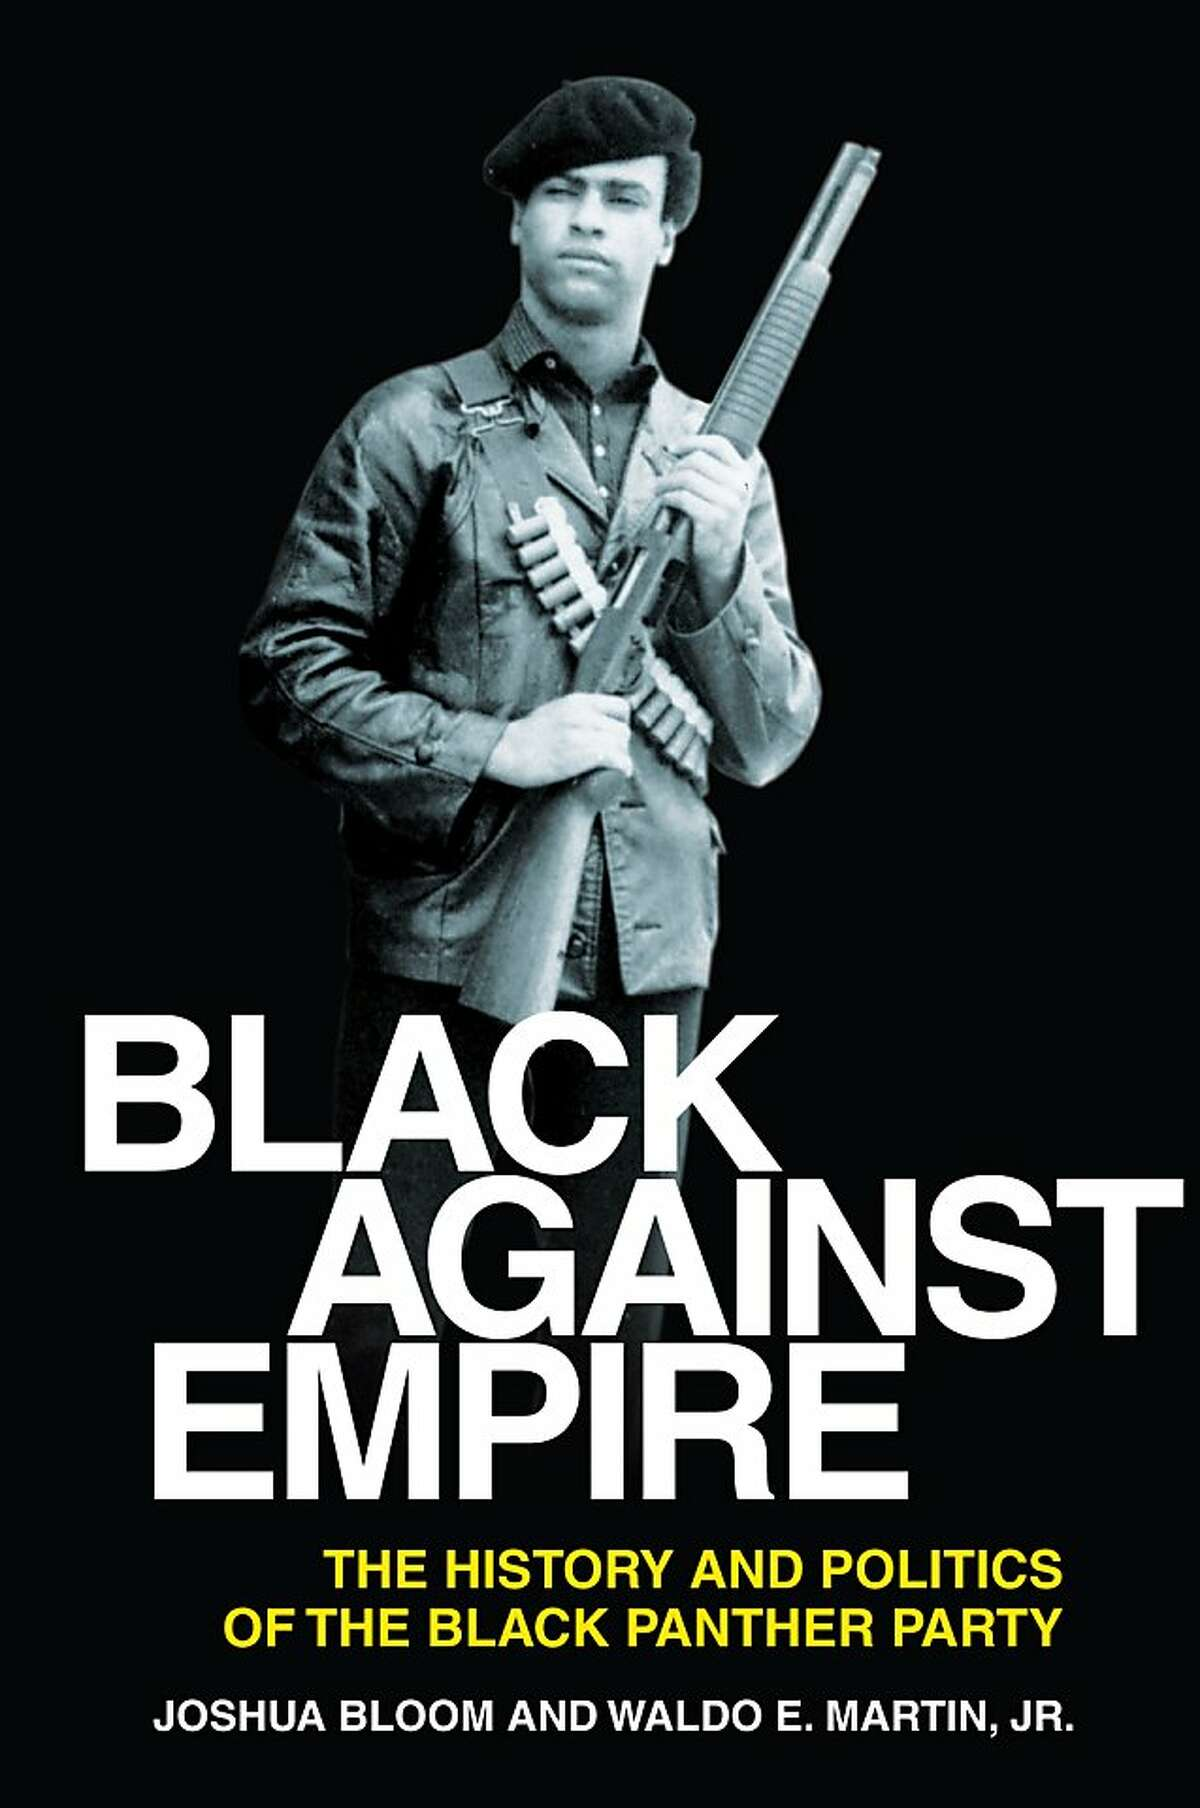 Black Against Empire: The History and Politics of the Black Panther Party, by Joshua Bloom and Waldo E. Martin